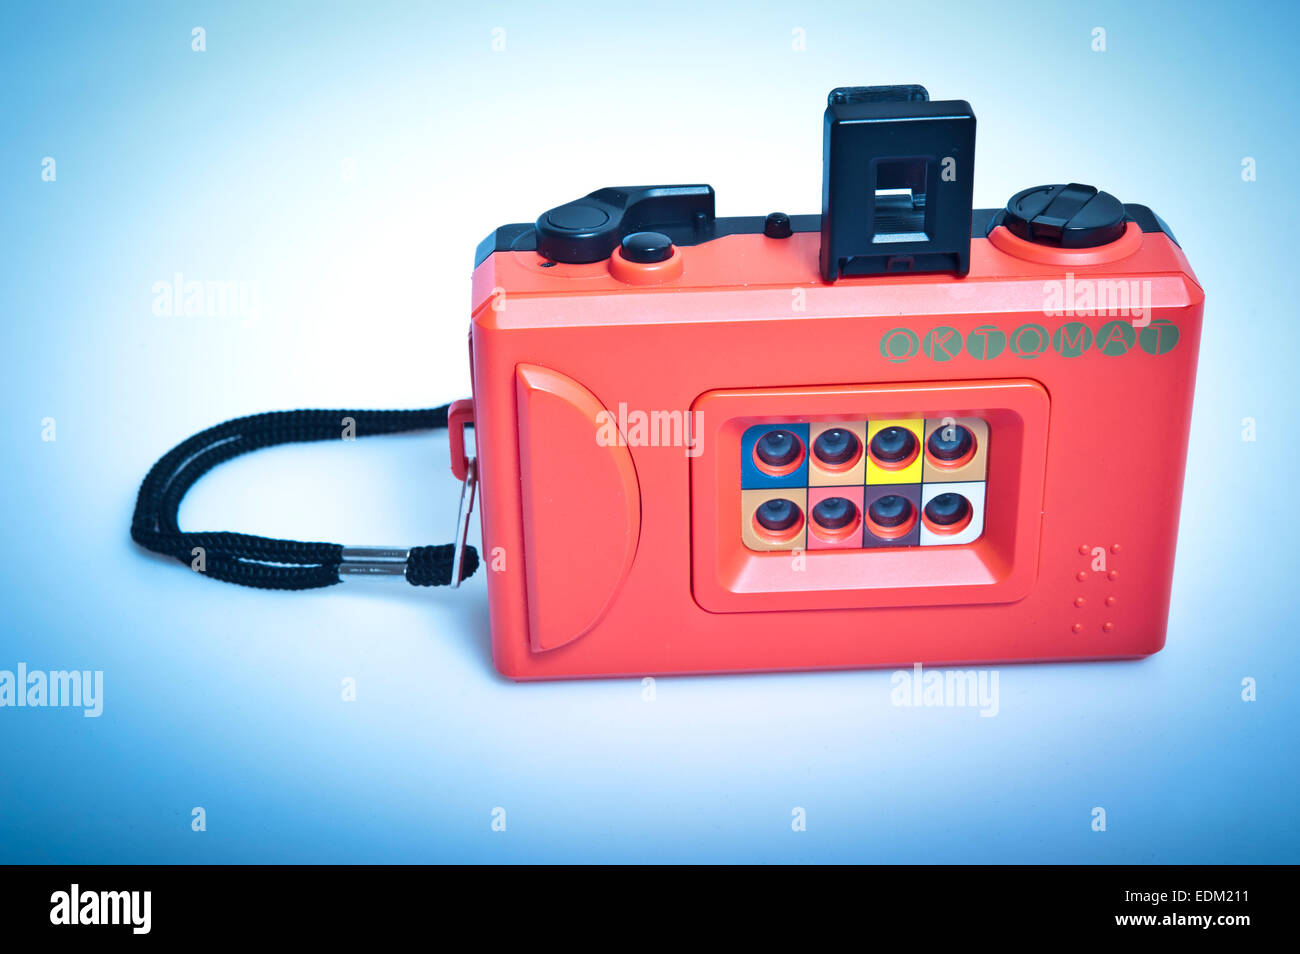 Oktomat Lomography photo camera - Stock Image